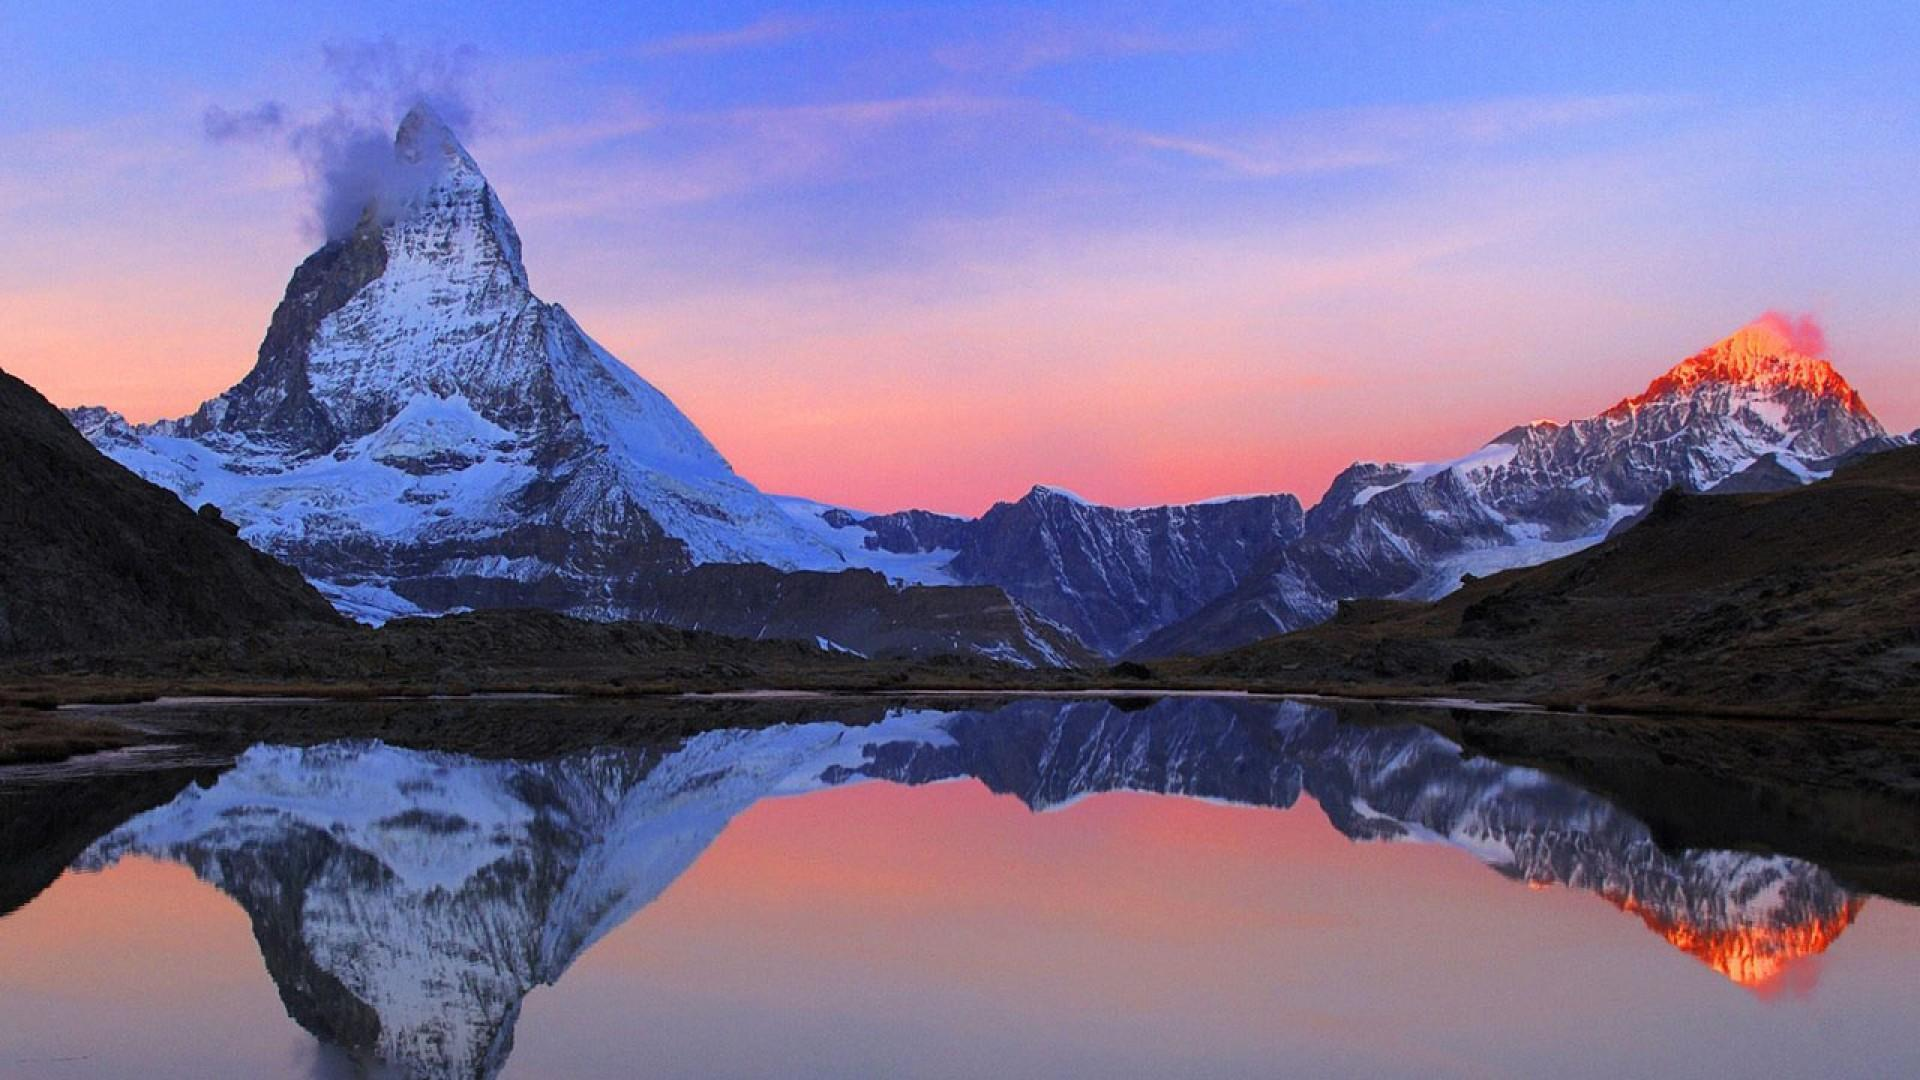 HD Break Of Dawn In The Swiss Alps Wallpaper